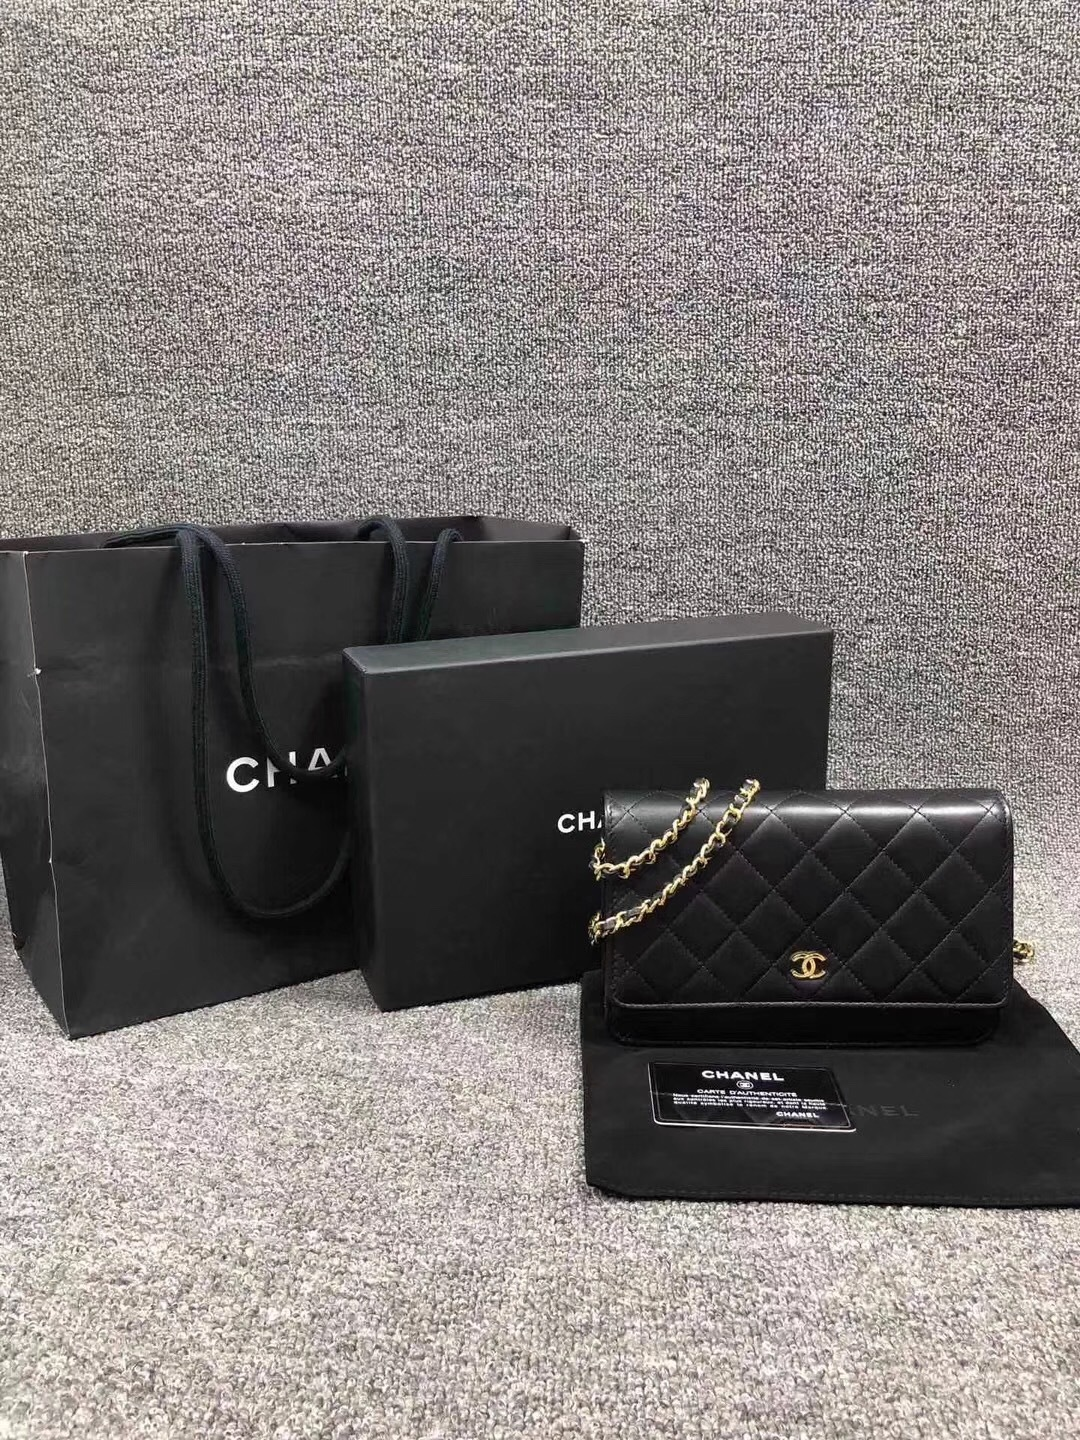 895d01c32edd31 NEW AUTH CHANEL 2019 Black Lambskin WOC Wallet on Chain WOC Bag GHW ...